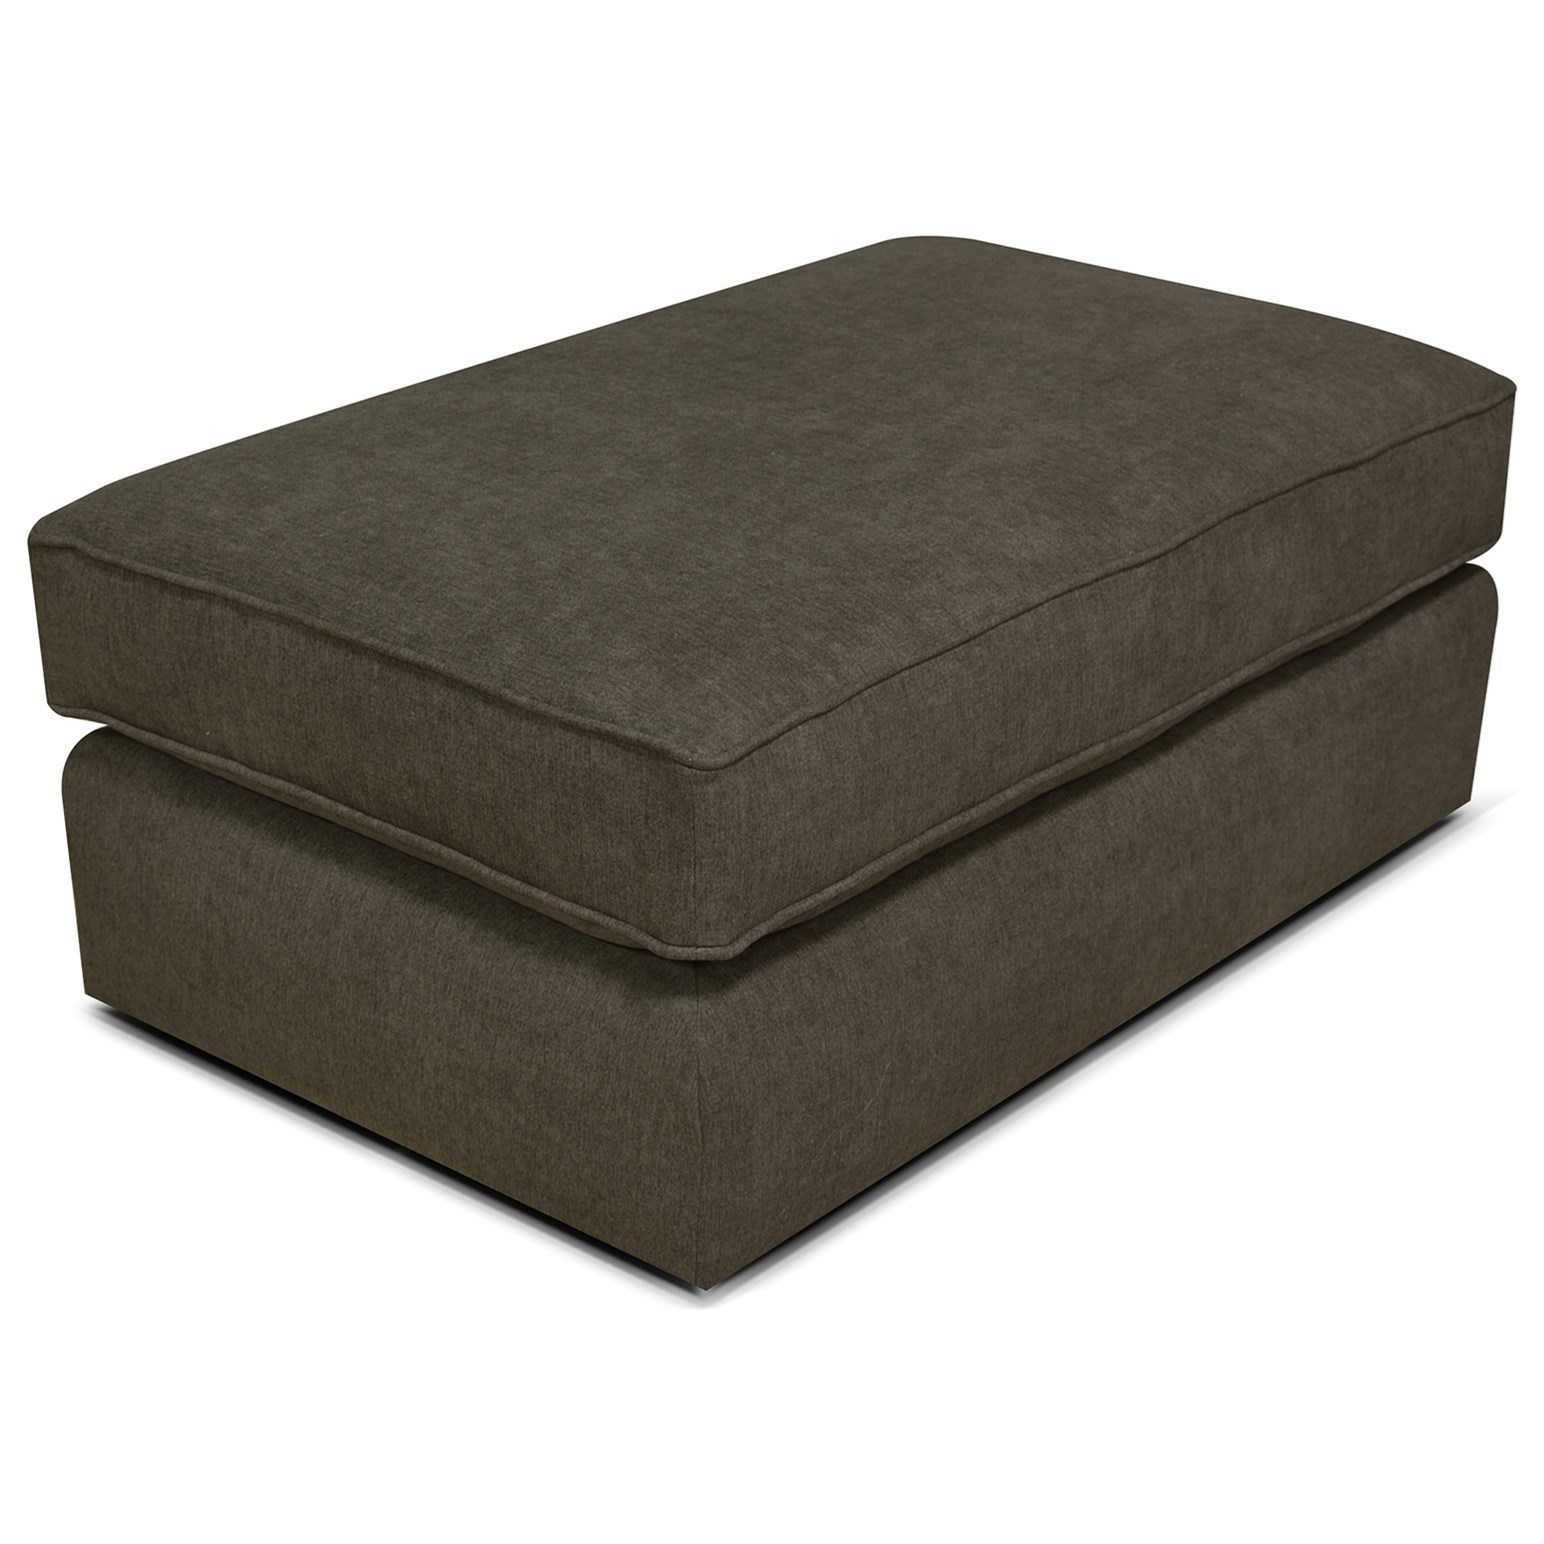 Rouse Ottoman by England at Pilgrim Furniture City